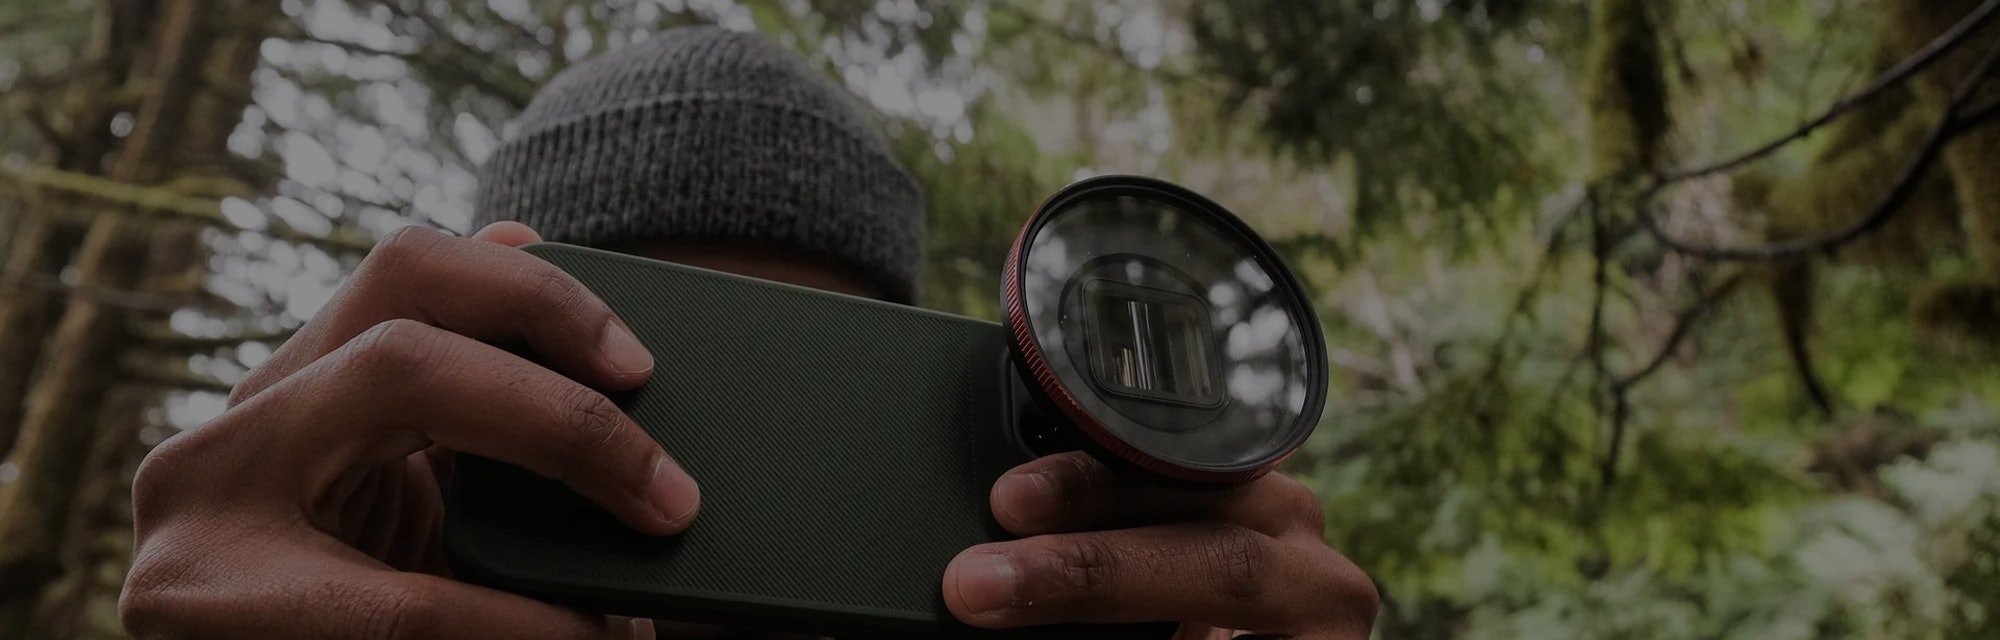 A man holding a smartphone with an attached add-on lens.